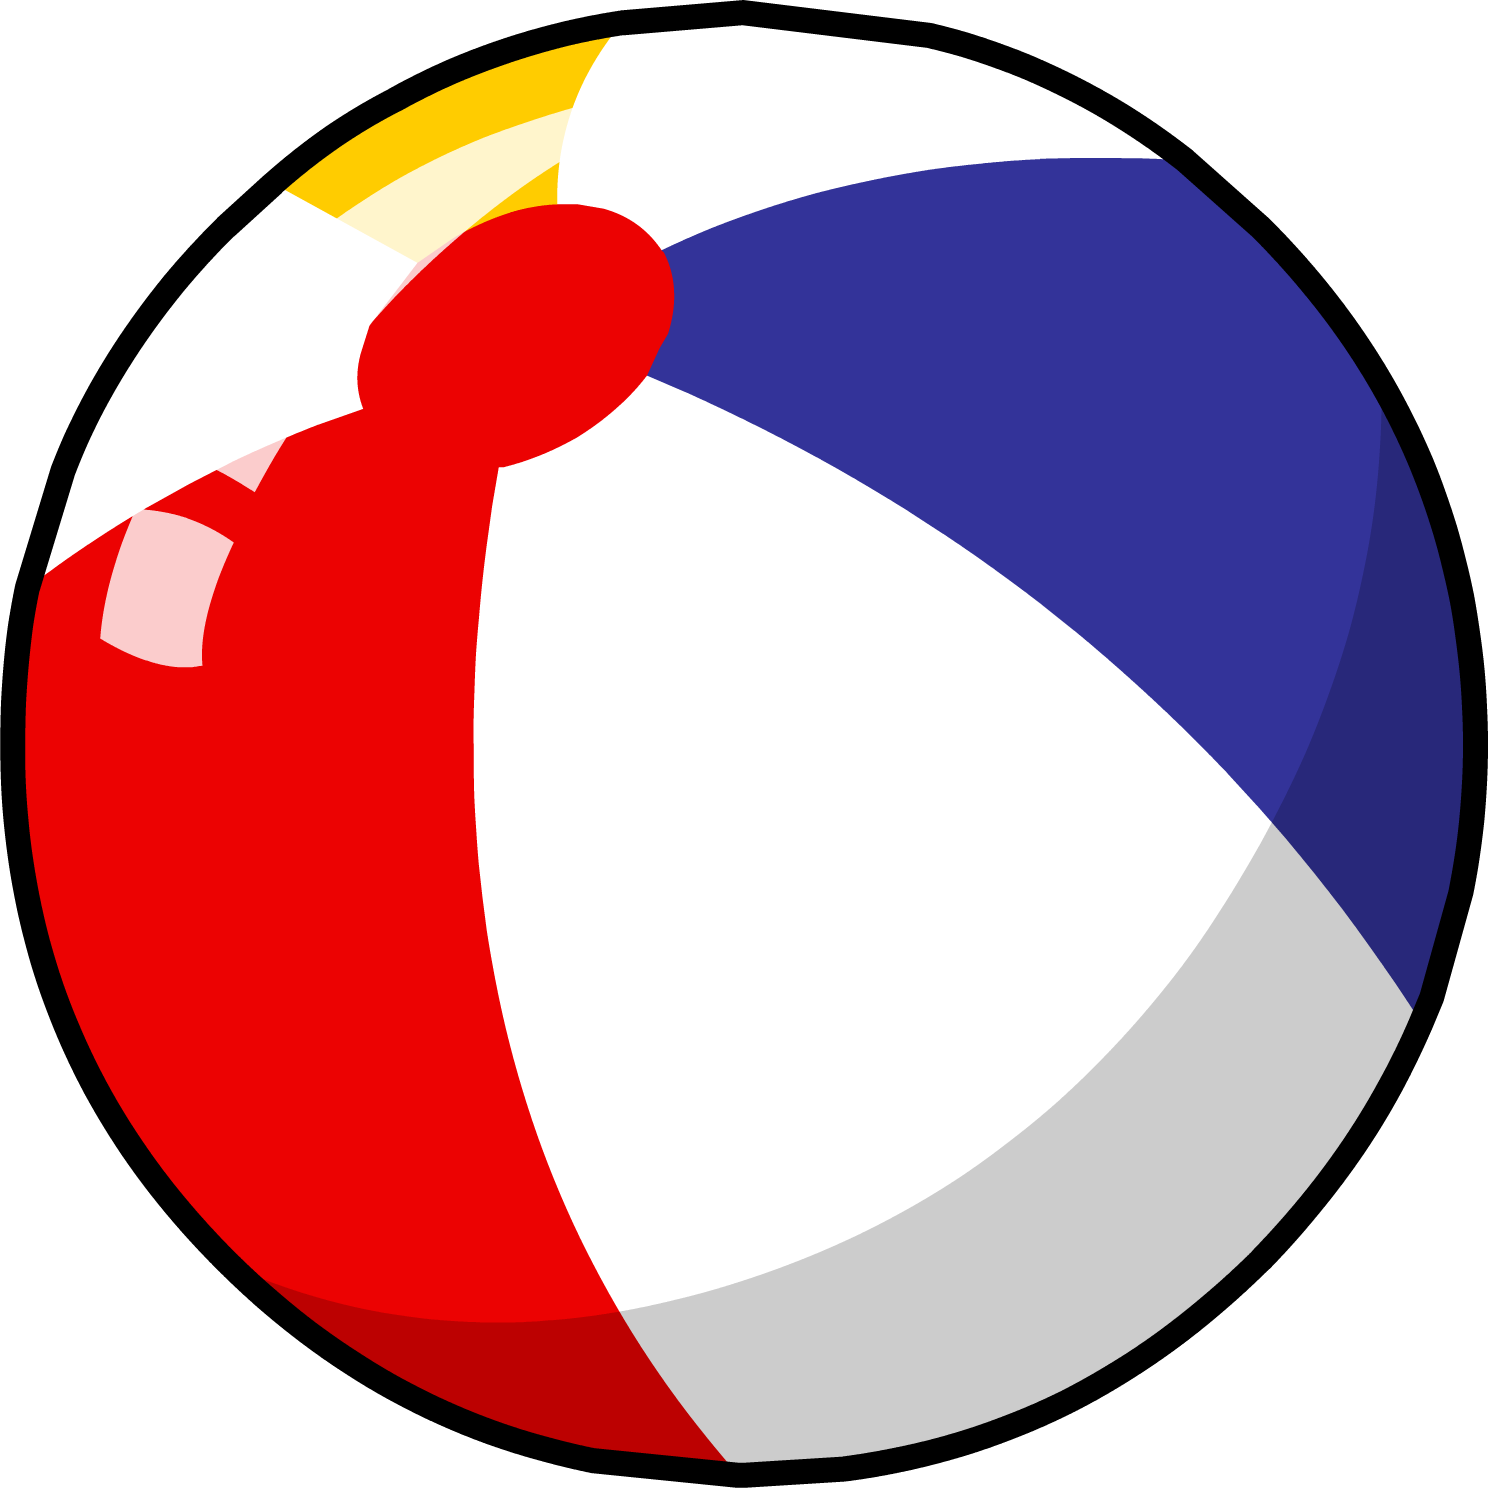 Beach ball png. Image club penguin wiki